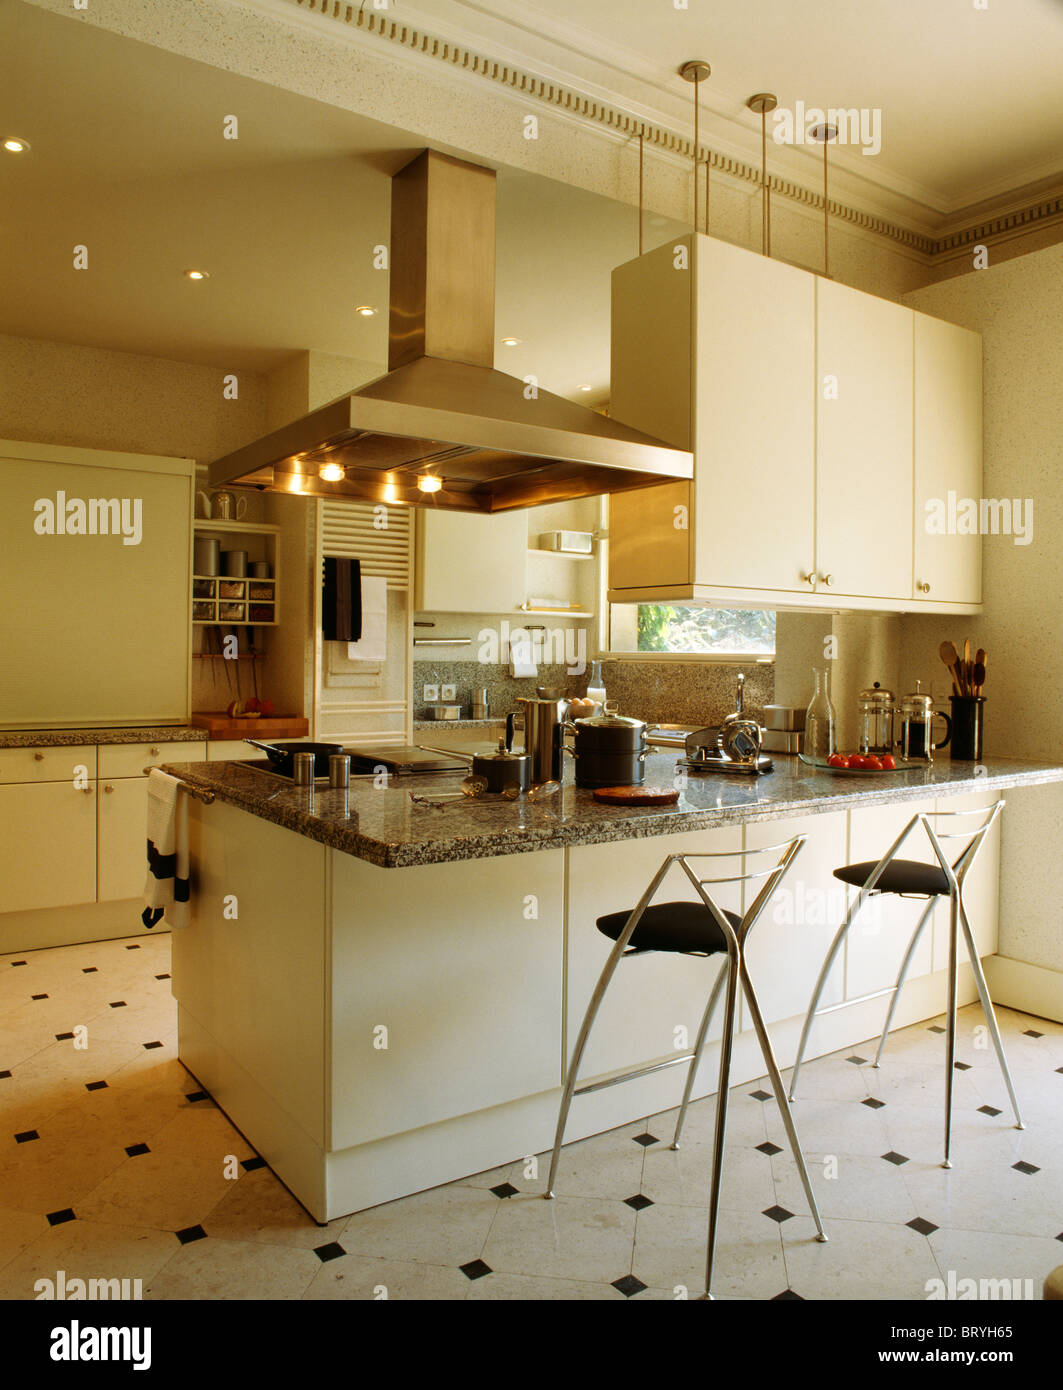 Stools at breakfast bar on peninsular unit with extractor beside ...